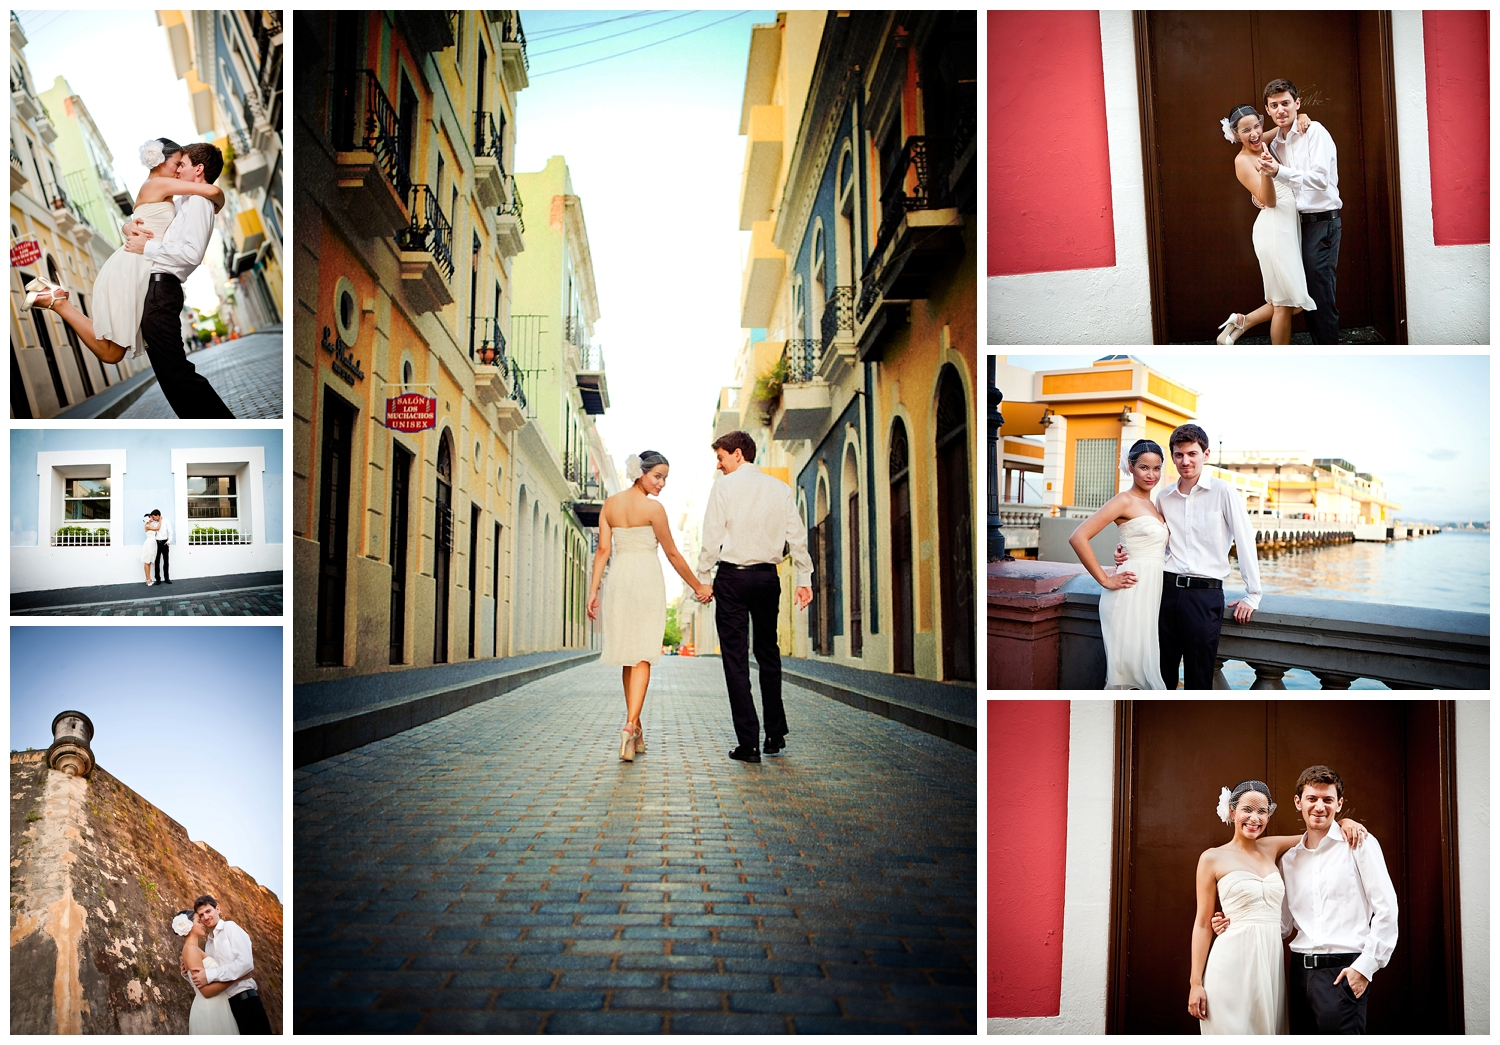 WEDDING PHOTOS IN OLD SAN JUAN, PUERTO RICO